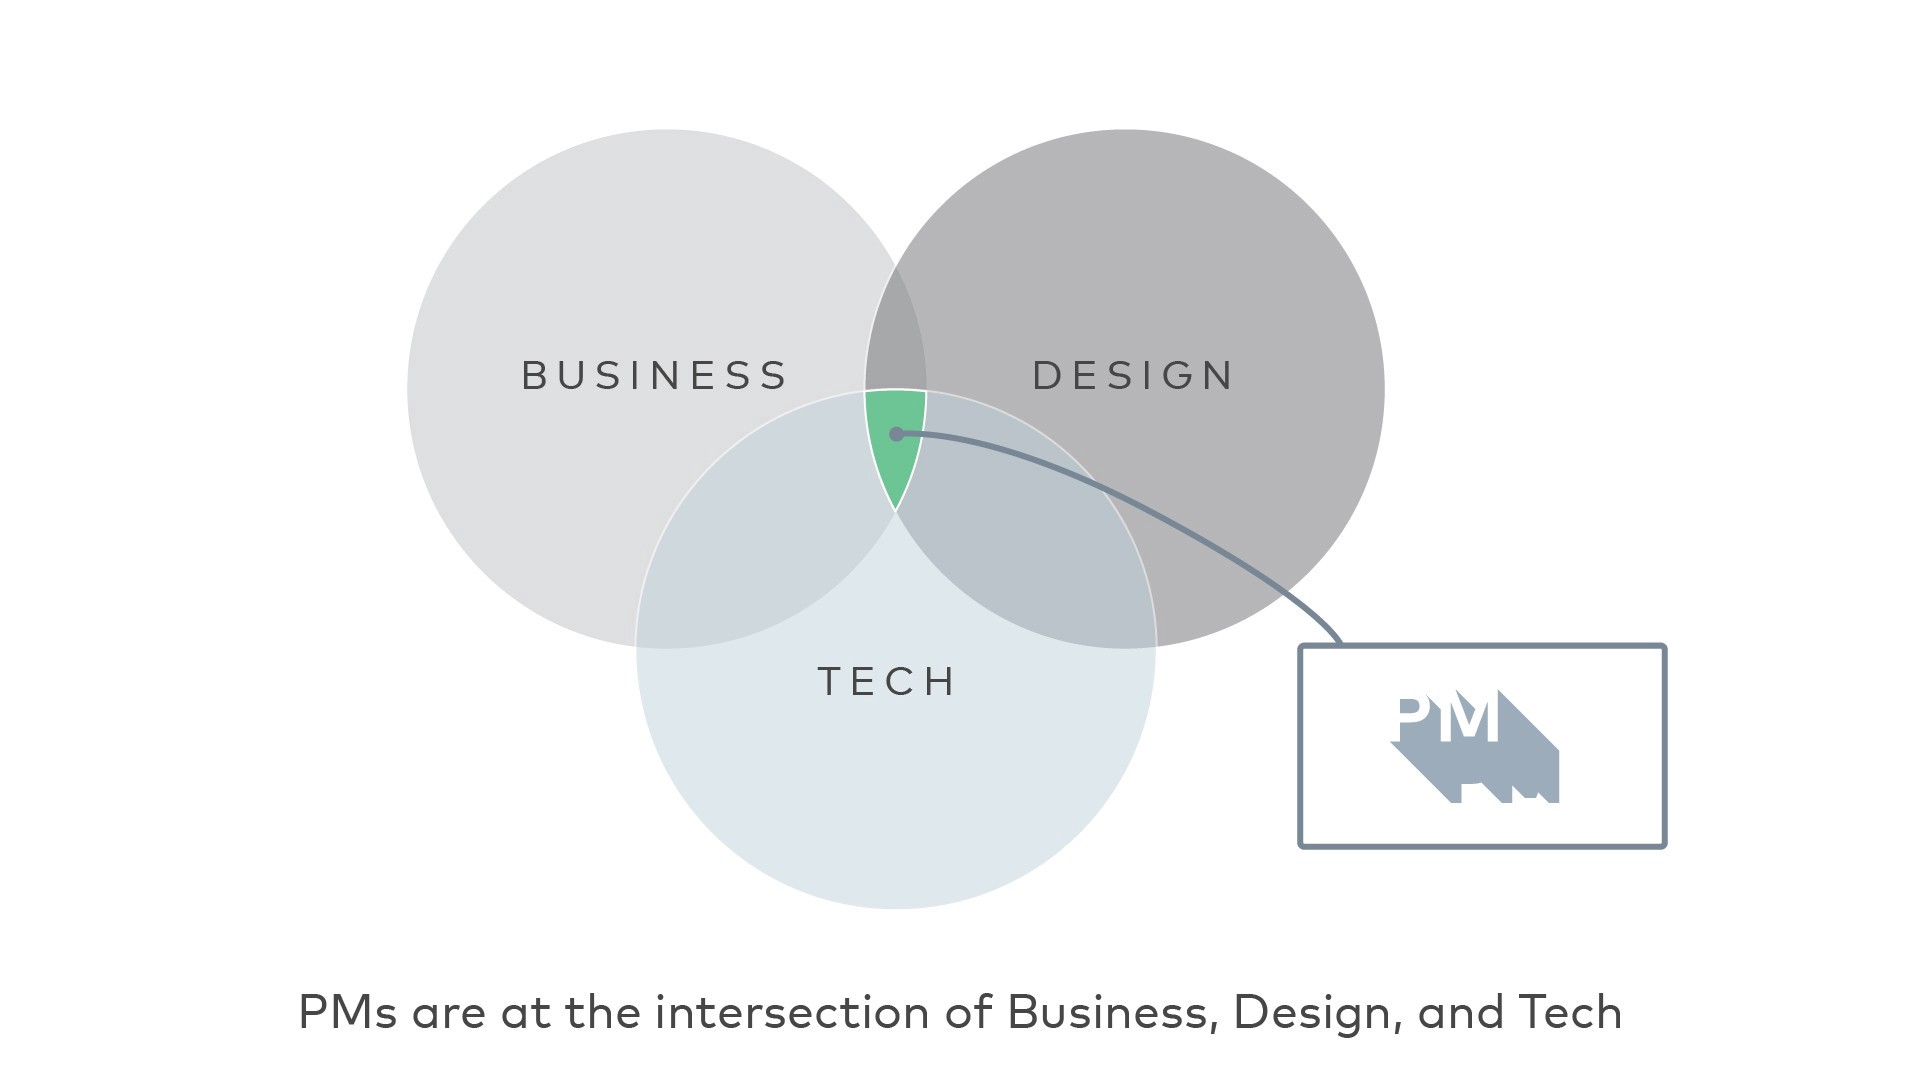 PMs are at the intersection of Business, Design, and Tech